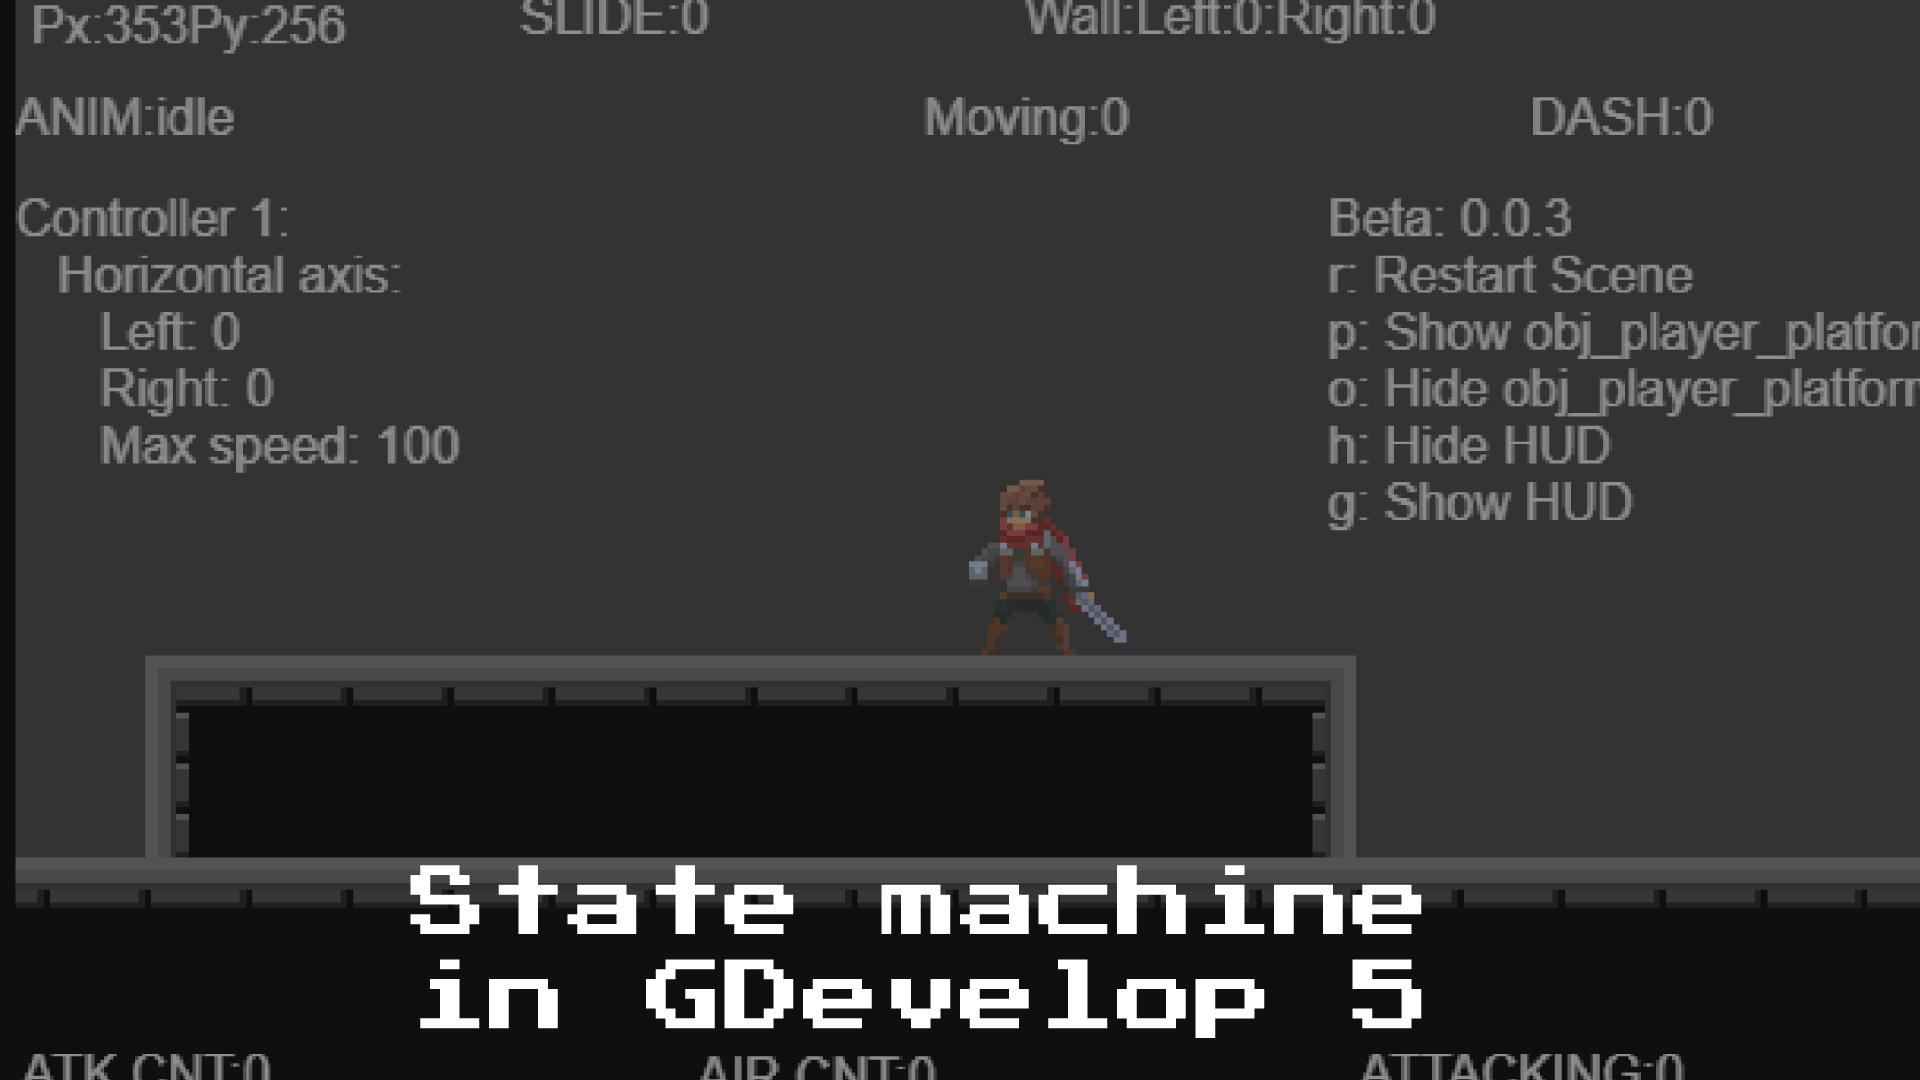 State machine with combos